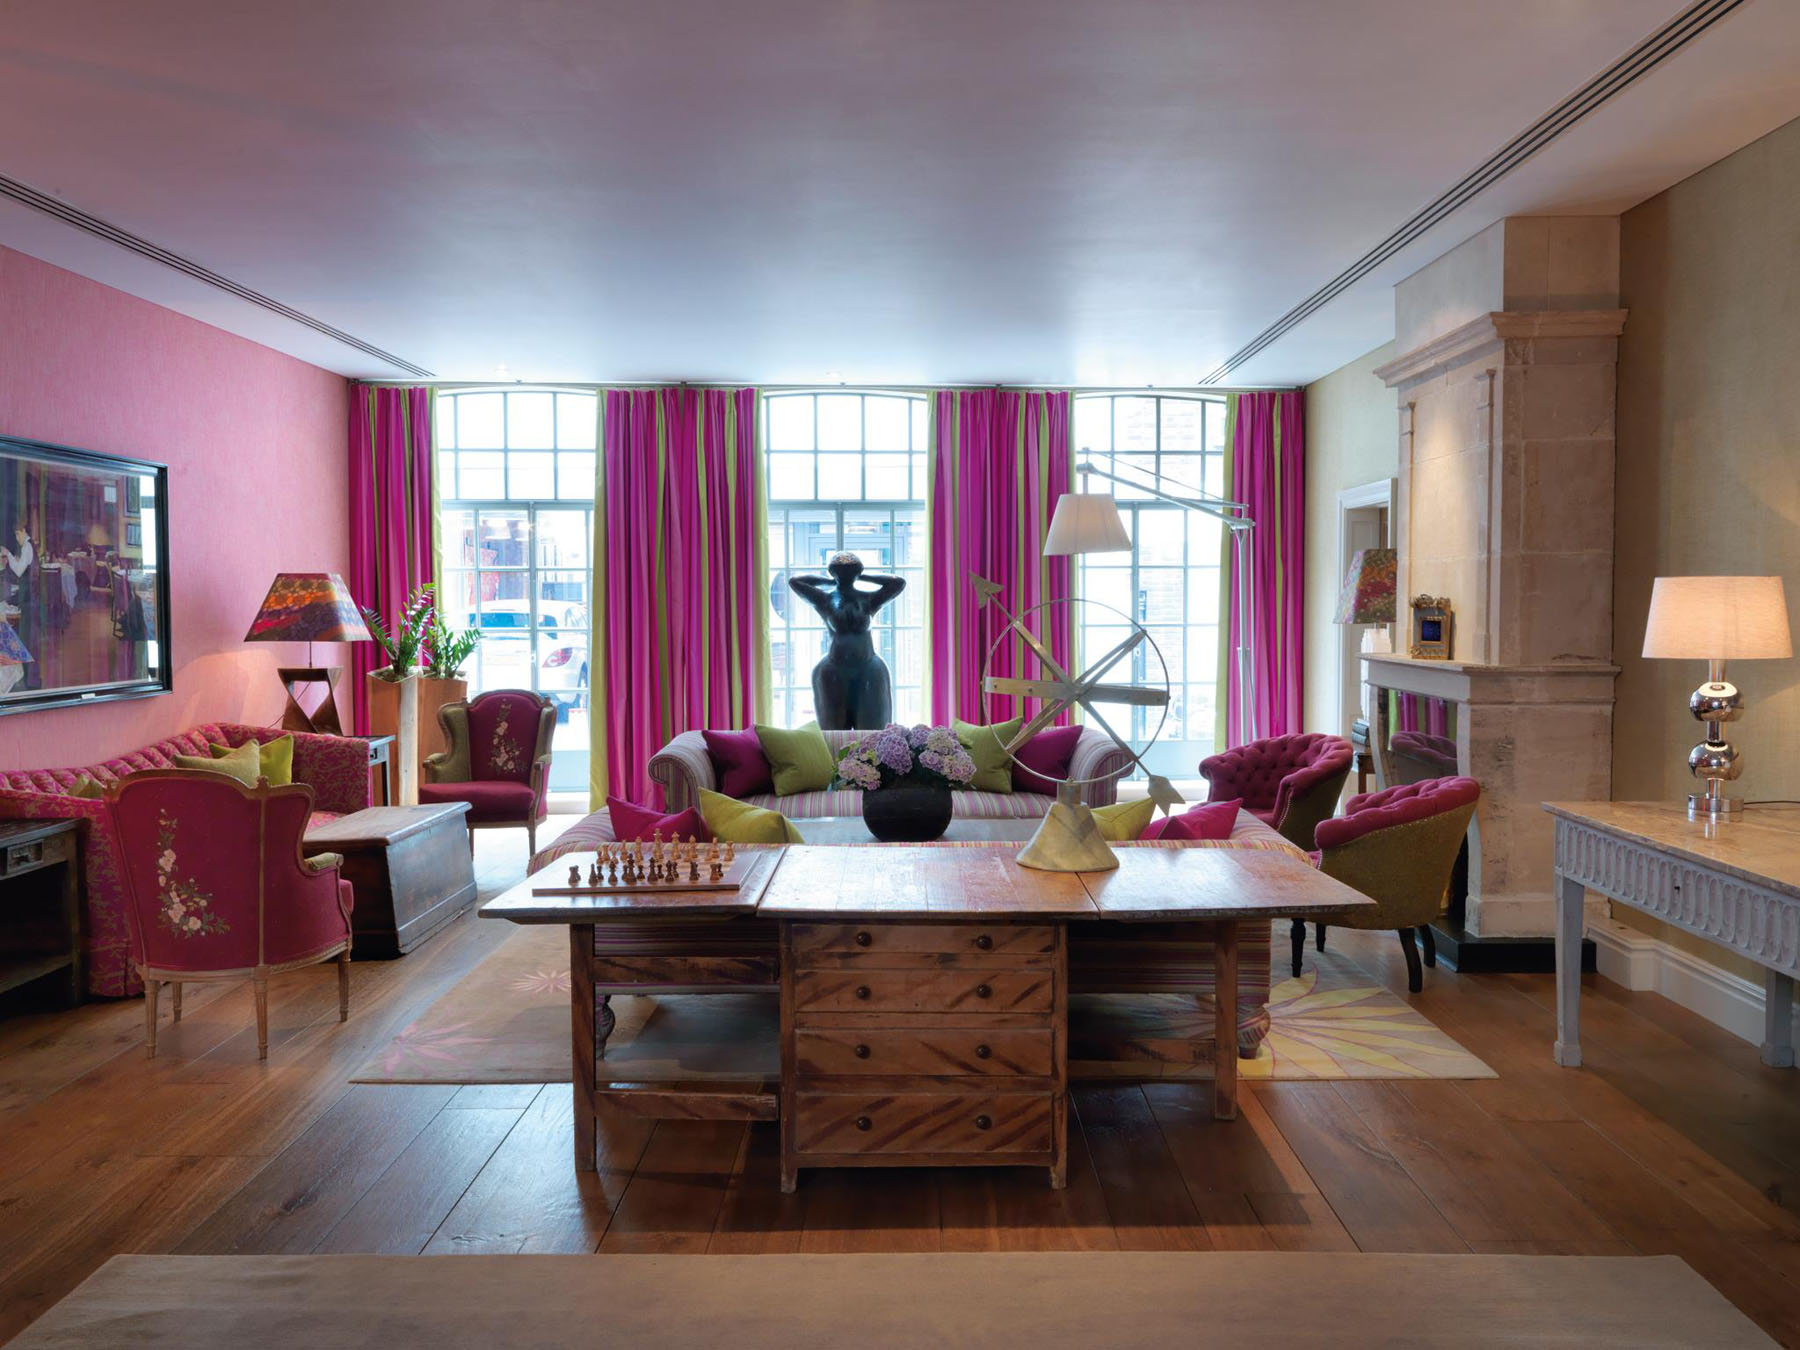 Kitchen Cabinets With Windows Trendy Soho Hotel London Interiors | Idesignarch